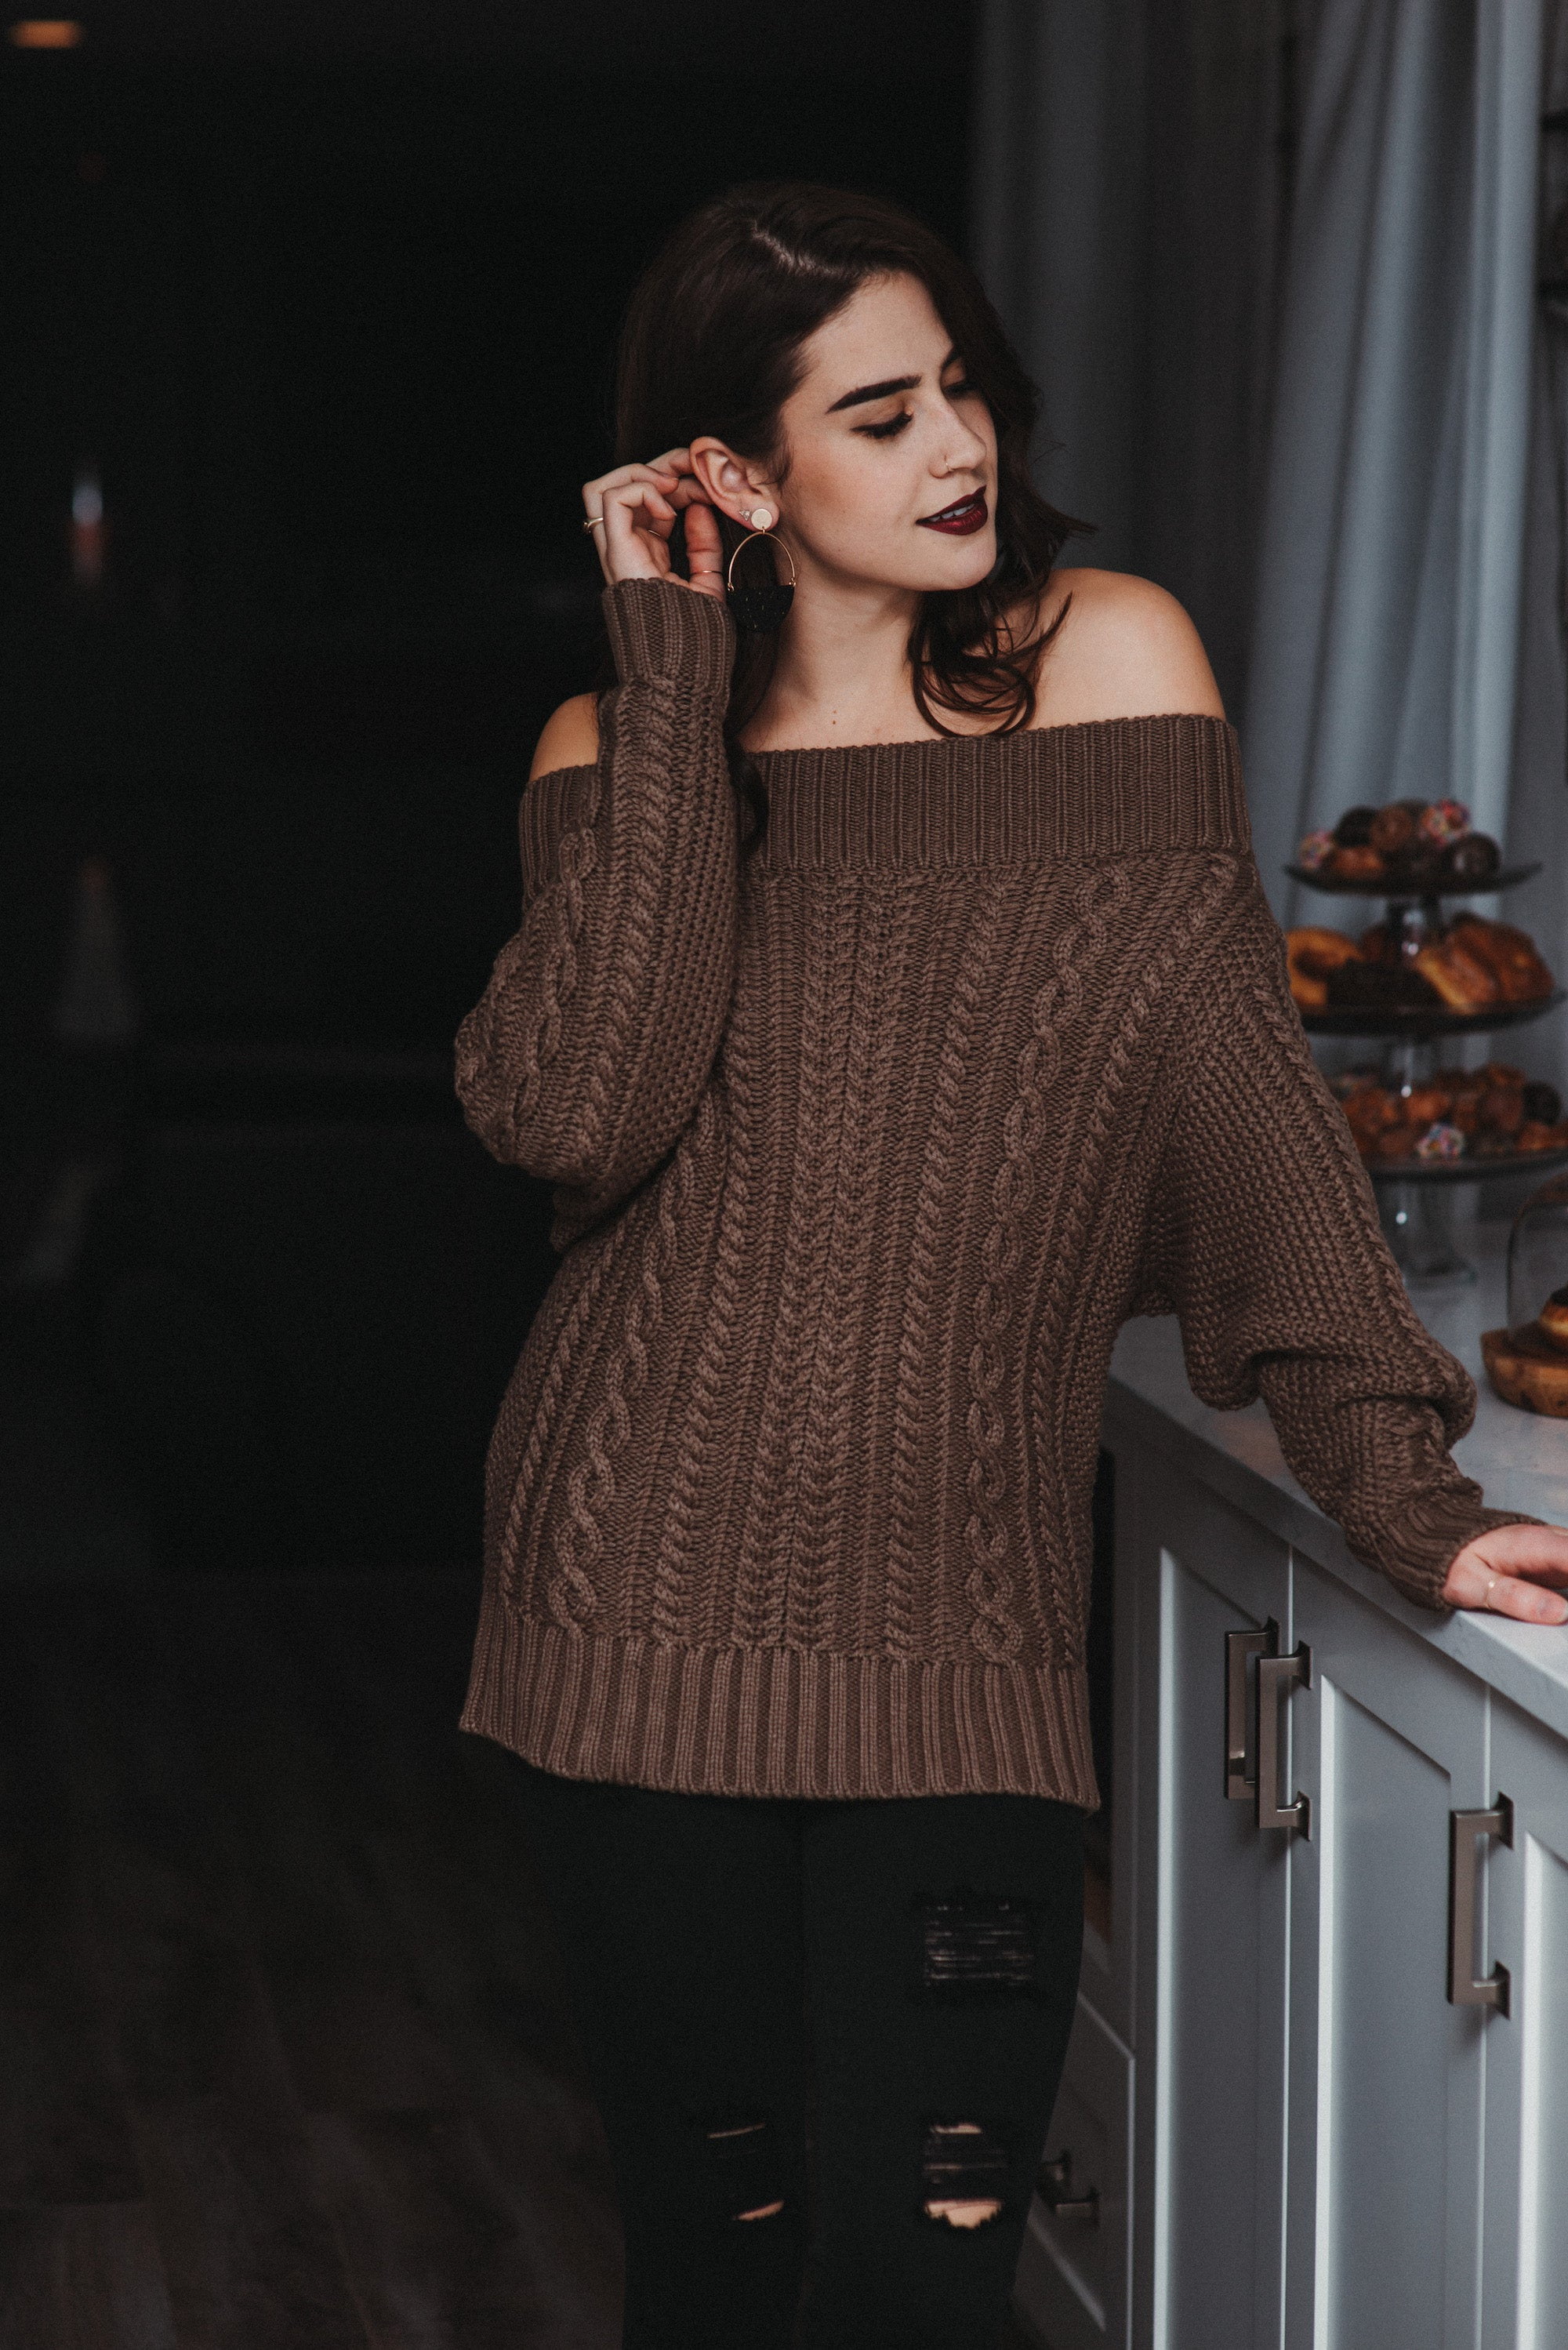 Home for the Holidays Off the Shoulder Cable Knit Sweater Dress / FINAL SALE